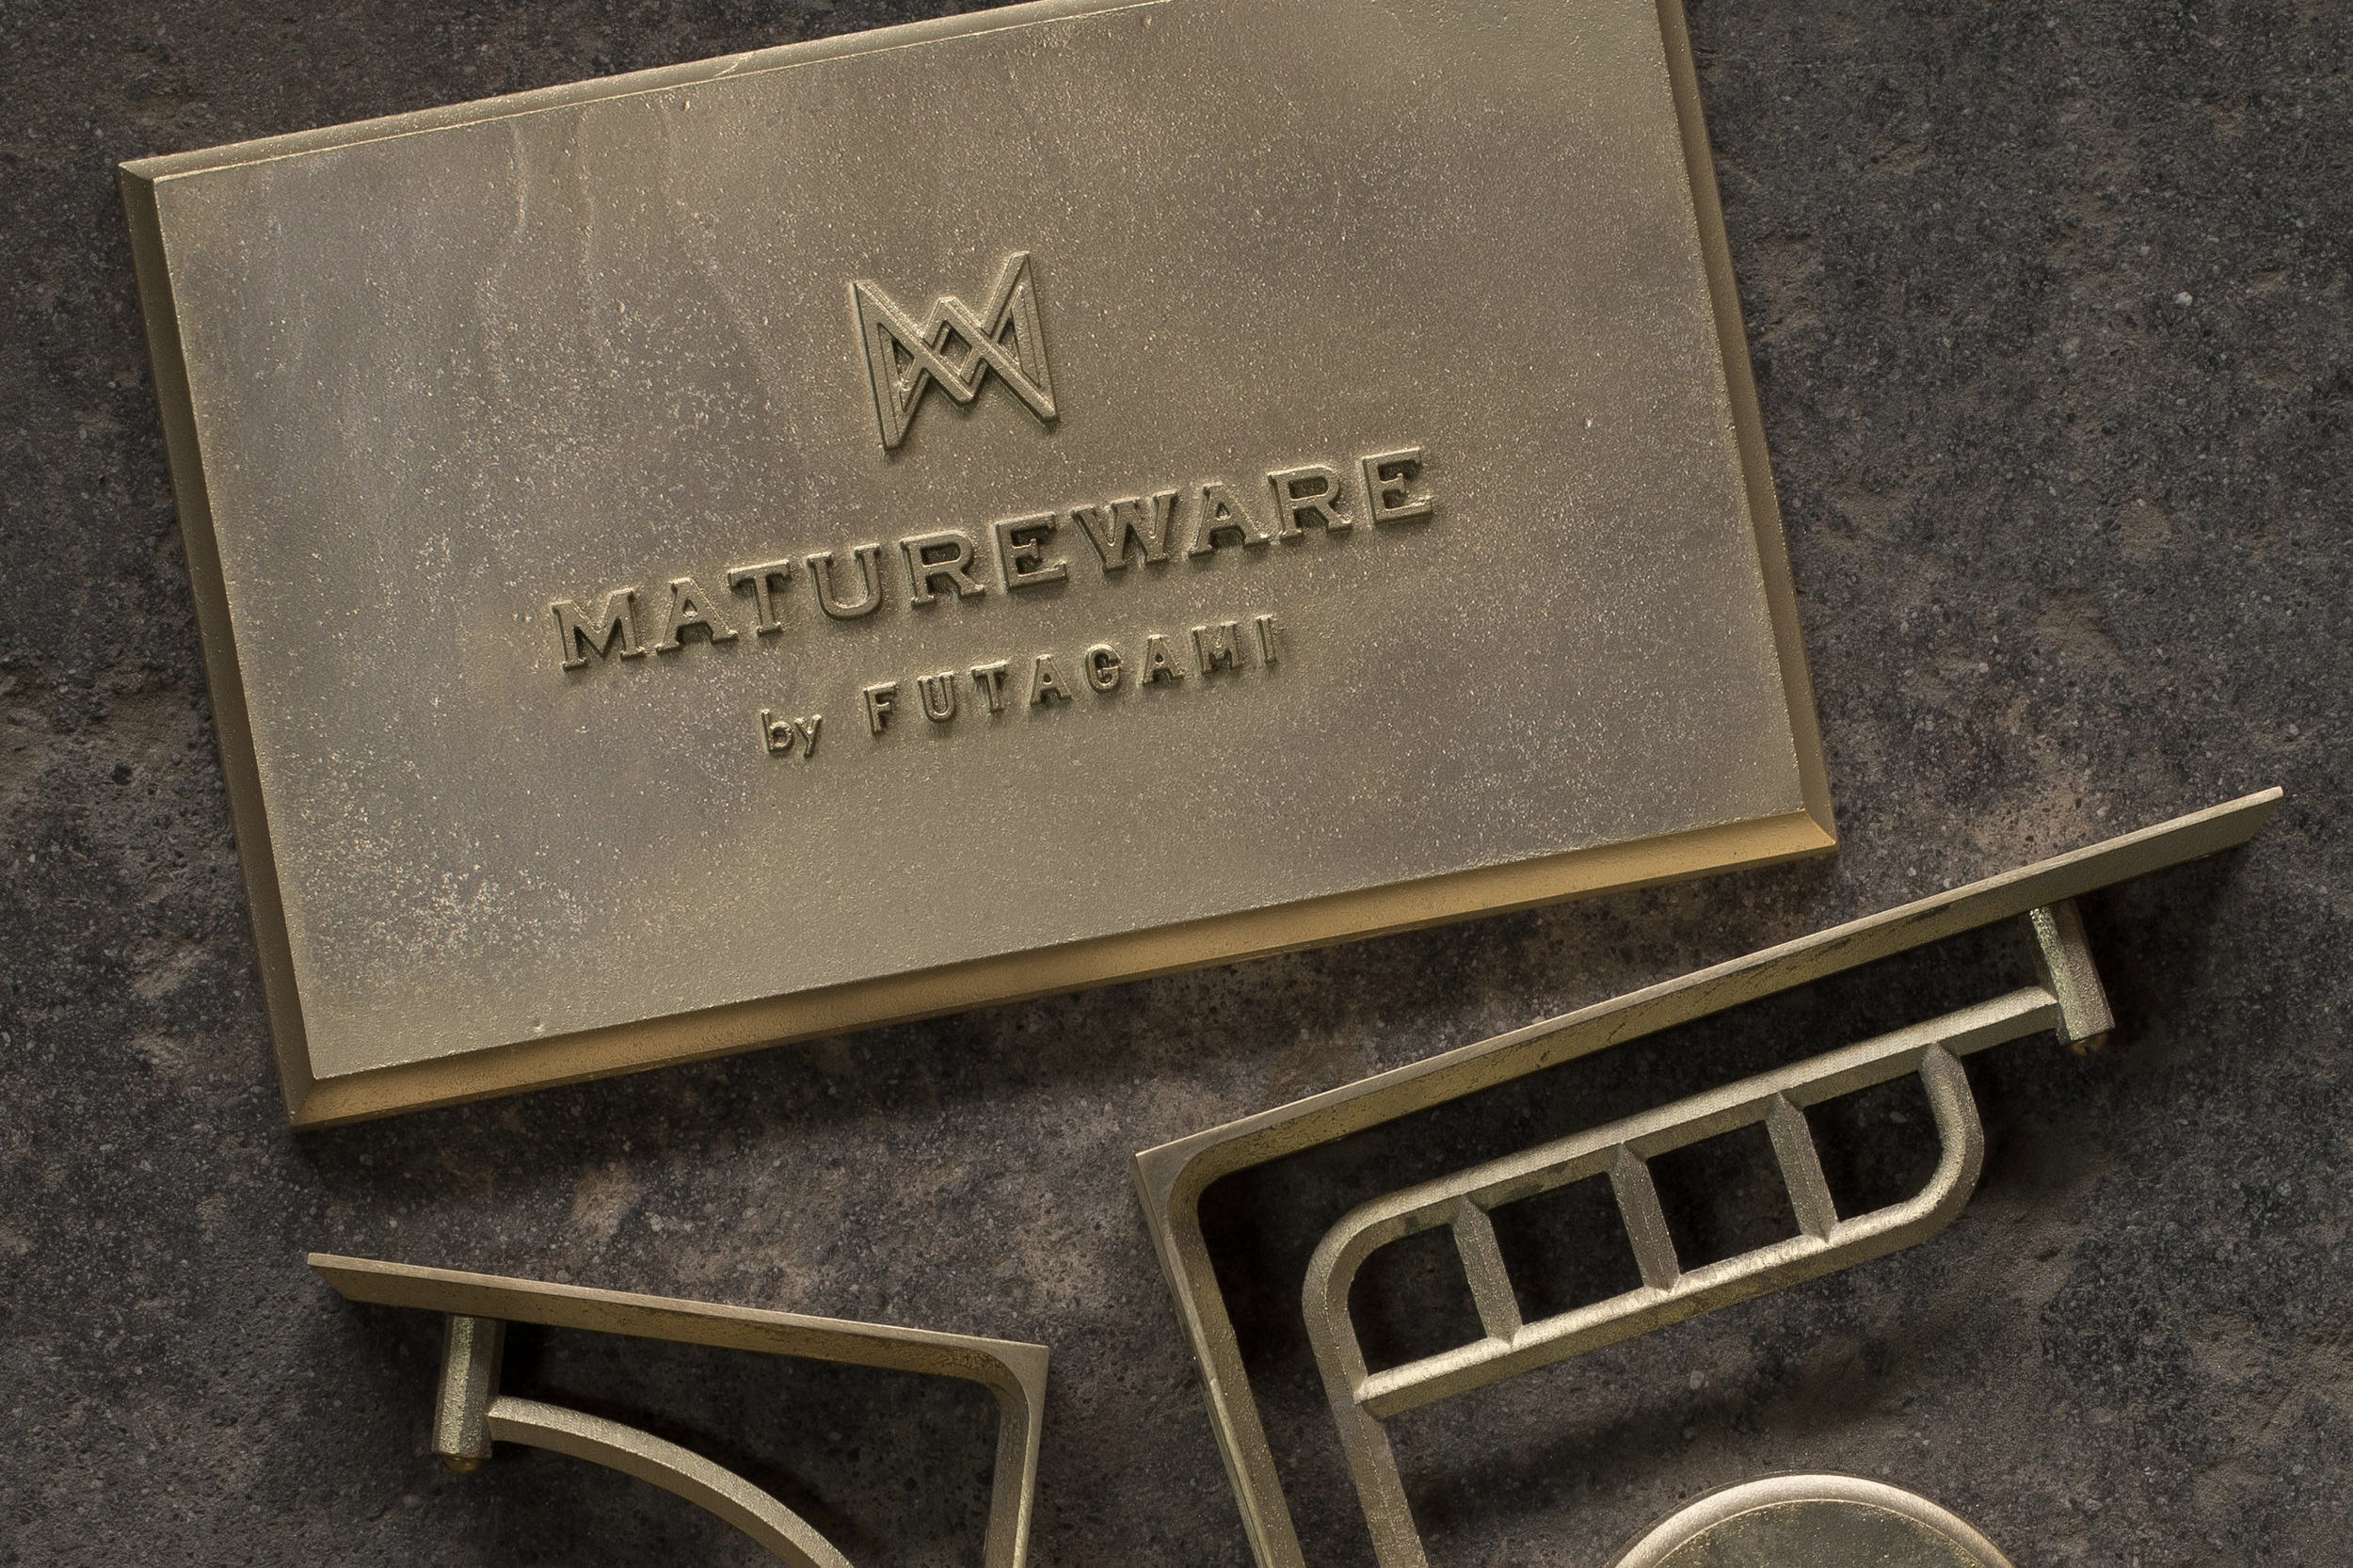 Native&Co_MATUREWARE_products_image.jpg